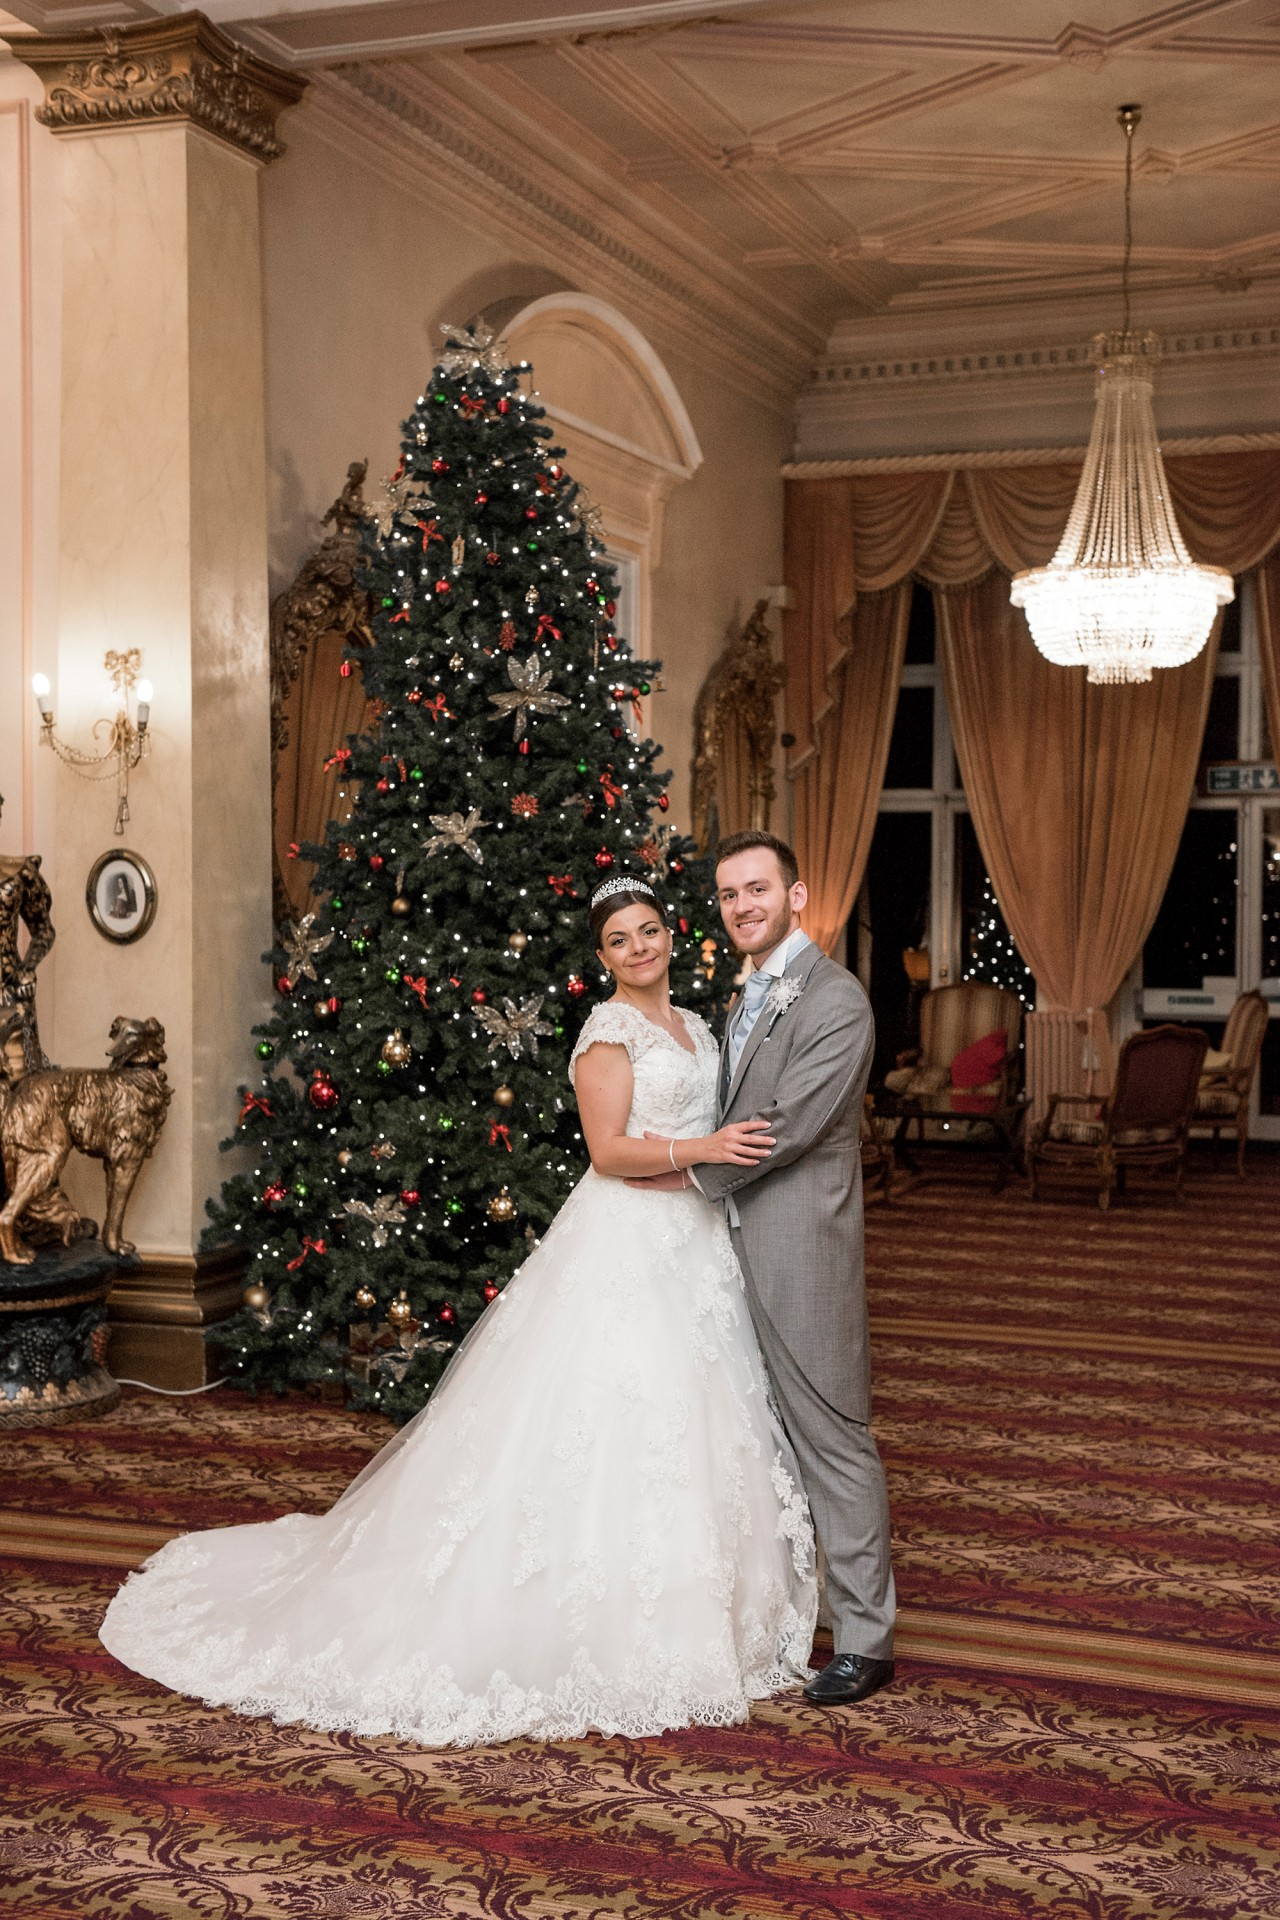 Luisa_Ronan_Winter-Wonderland-Wedding_SBS_034